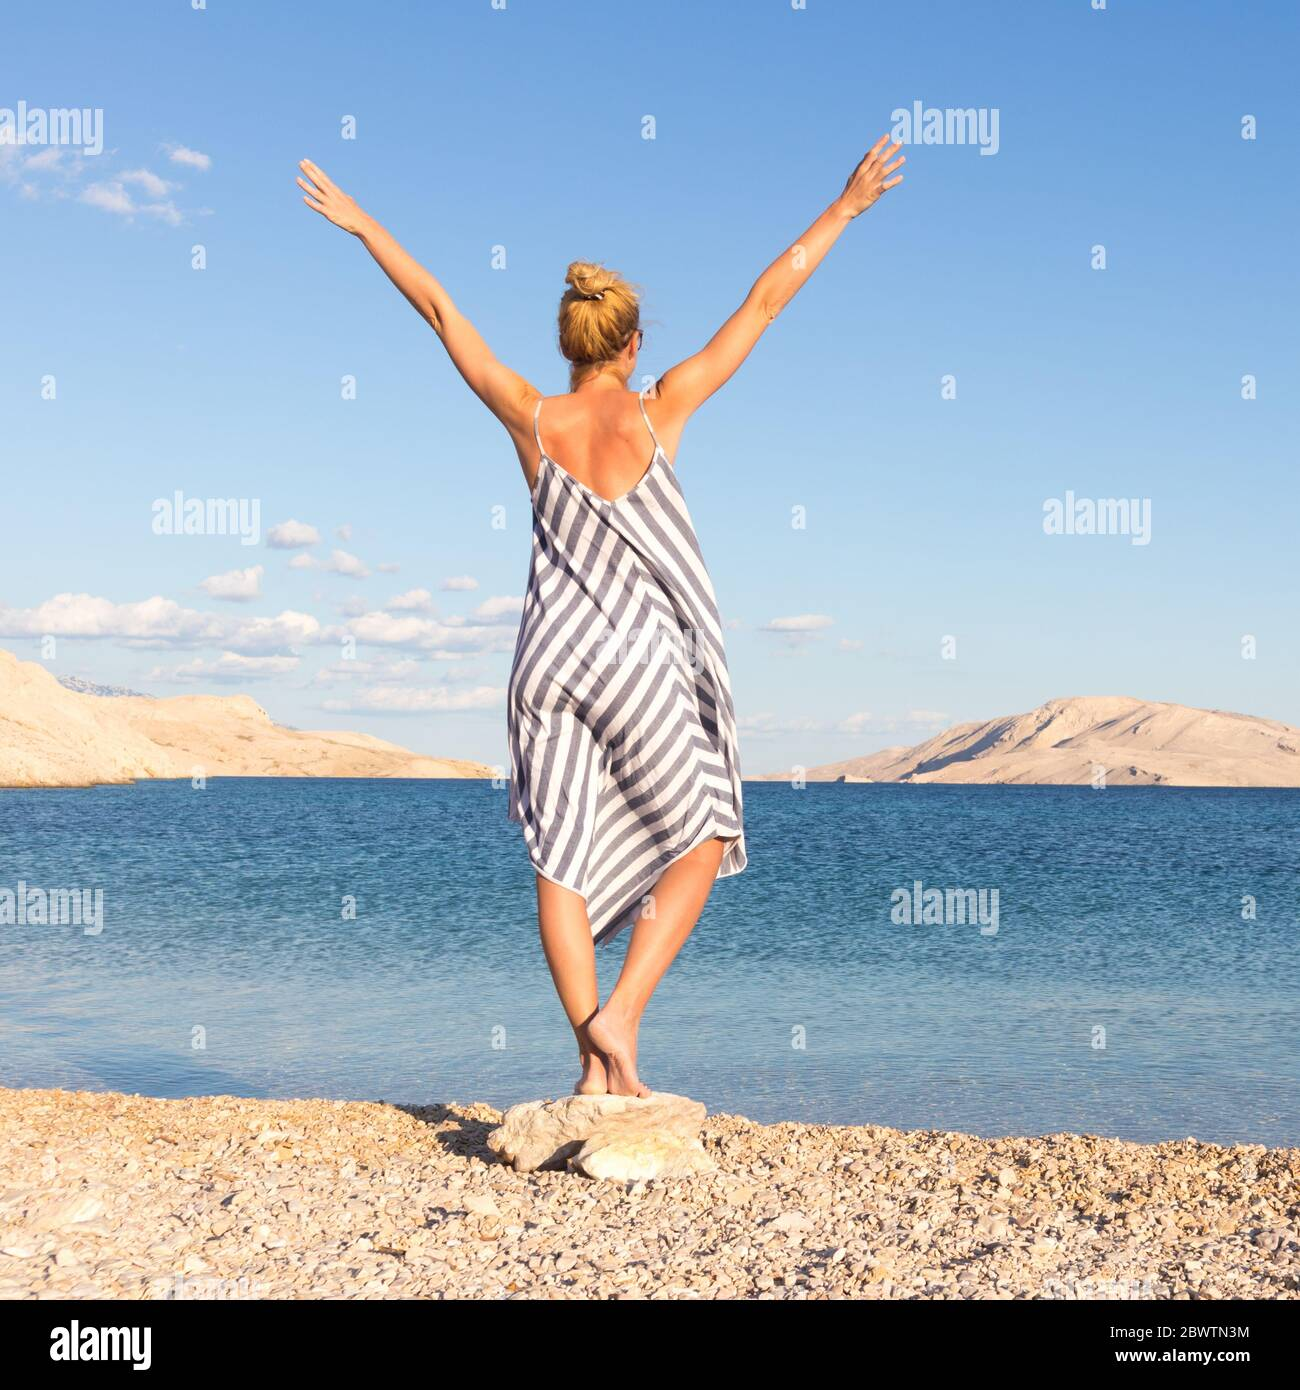 Happy carefree woman rising arms, wearing beautiful striped summer dress enjoying late afternoon on white pabbled beach on Pag island, Croatia Stock Photo